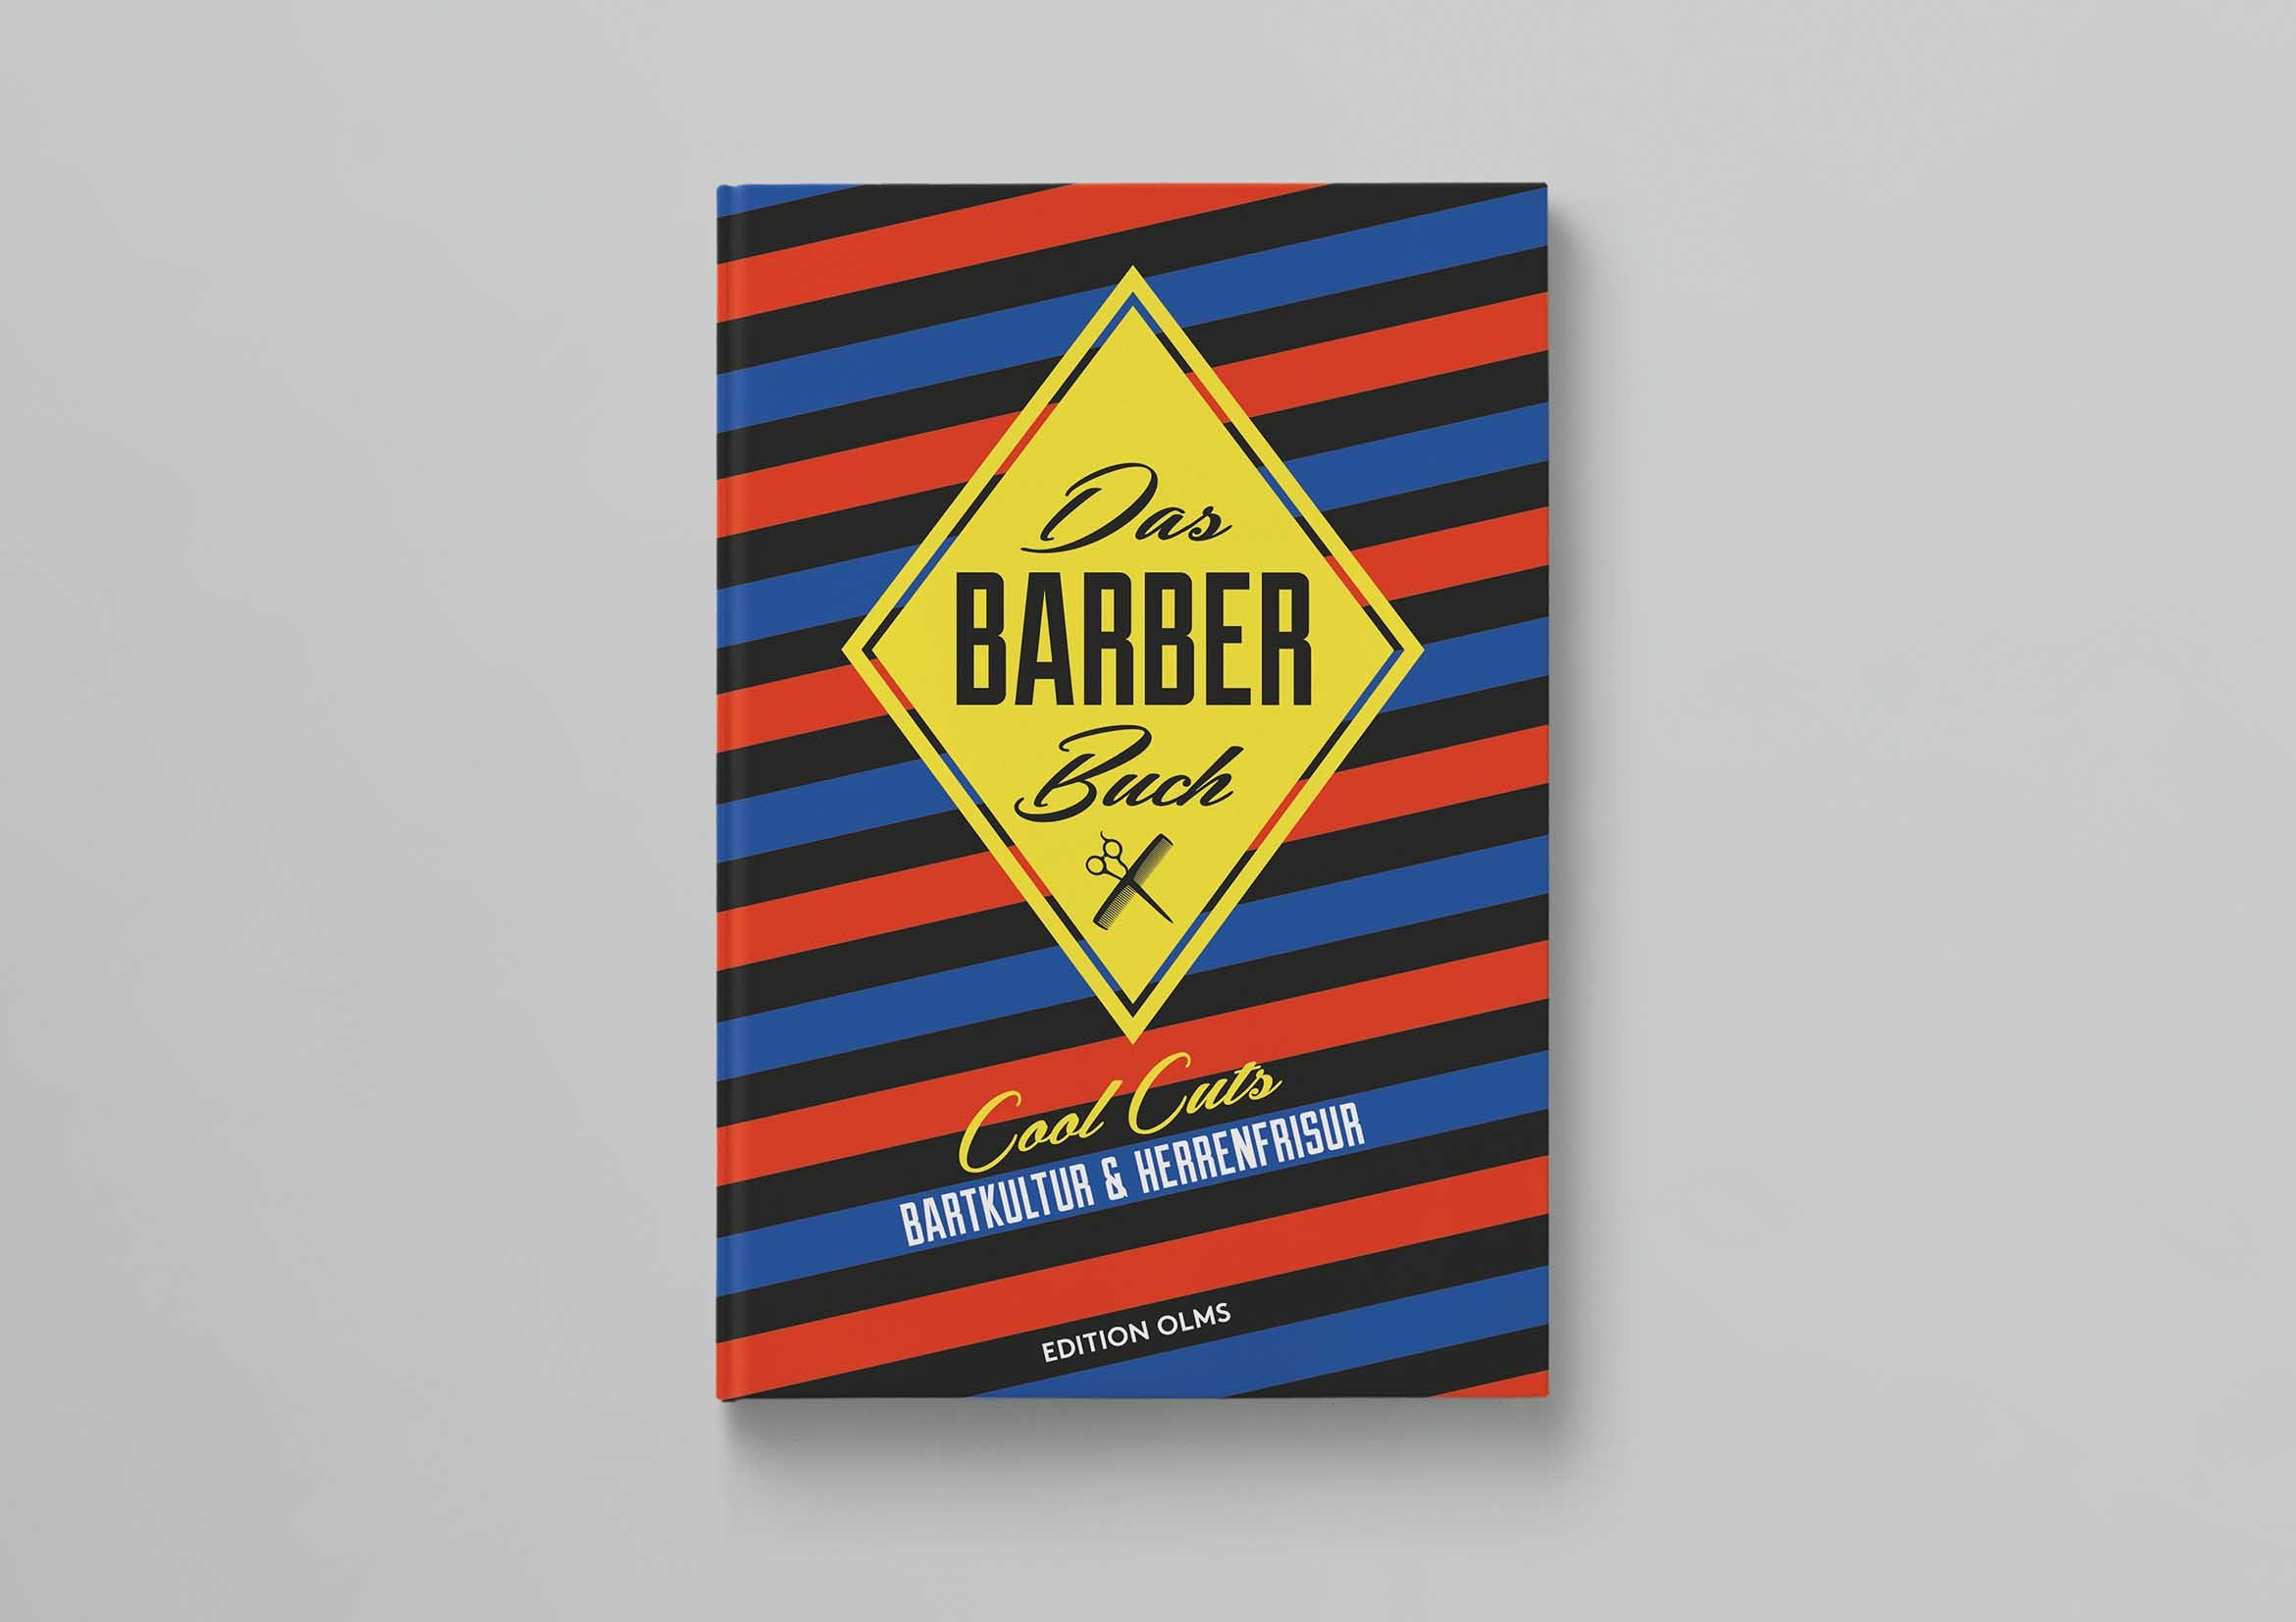 barber_buch_cover_02